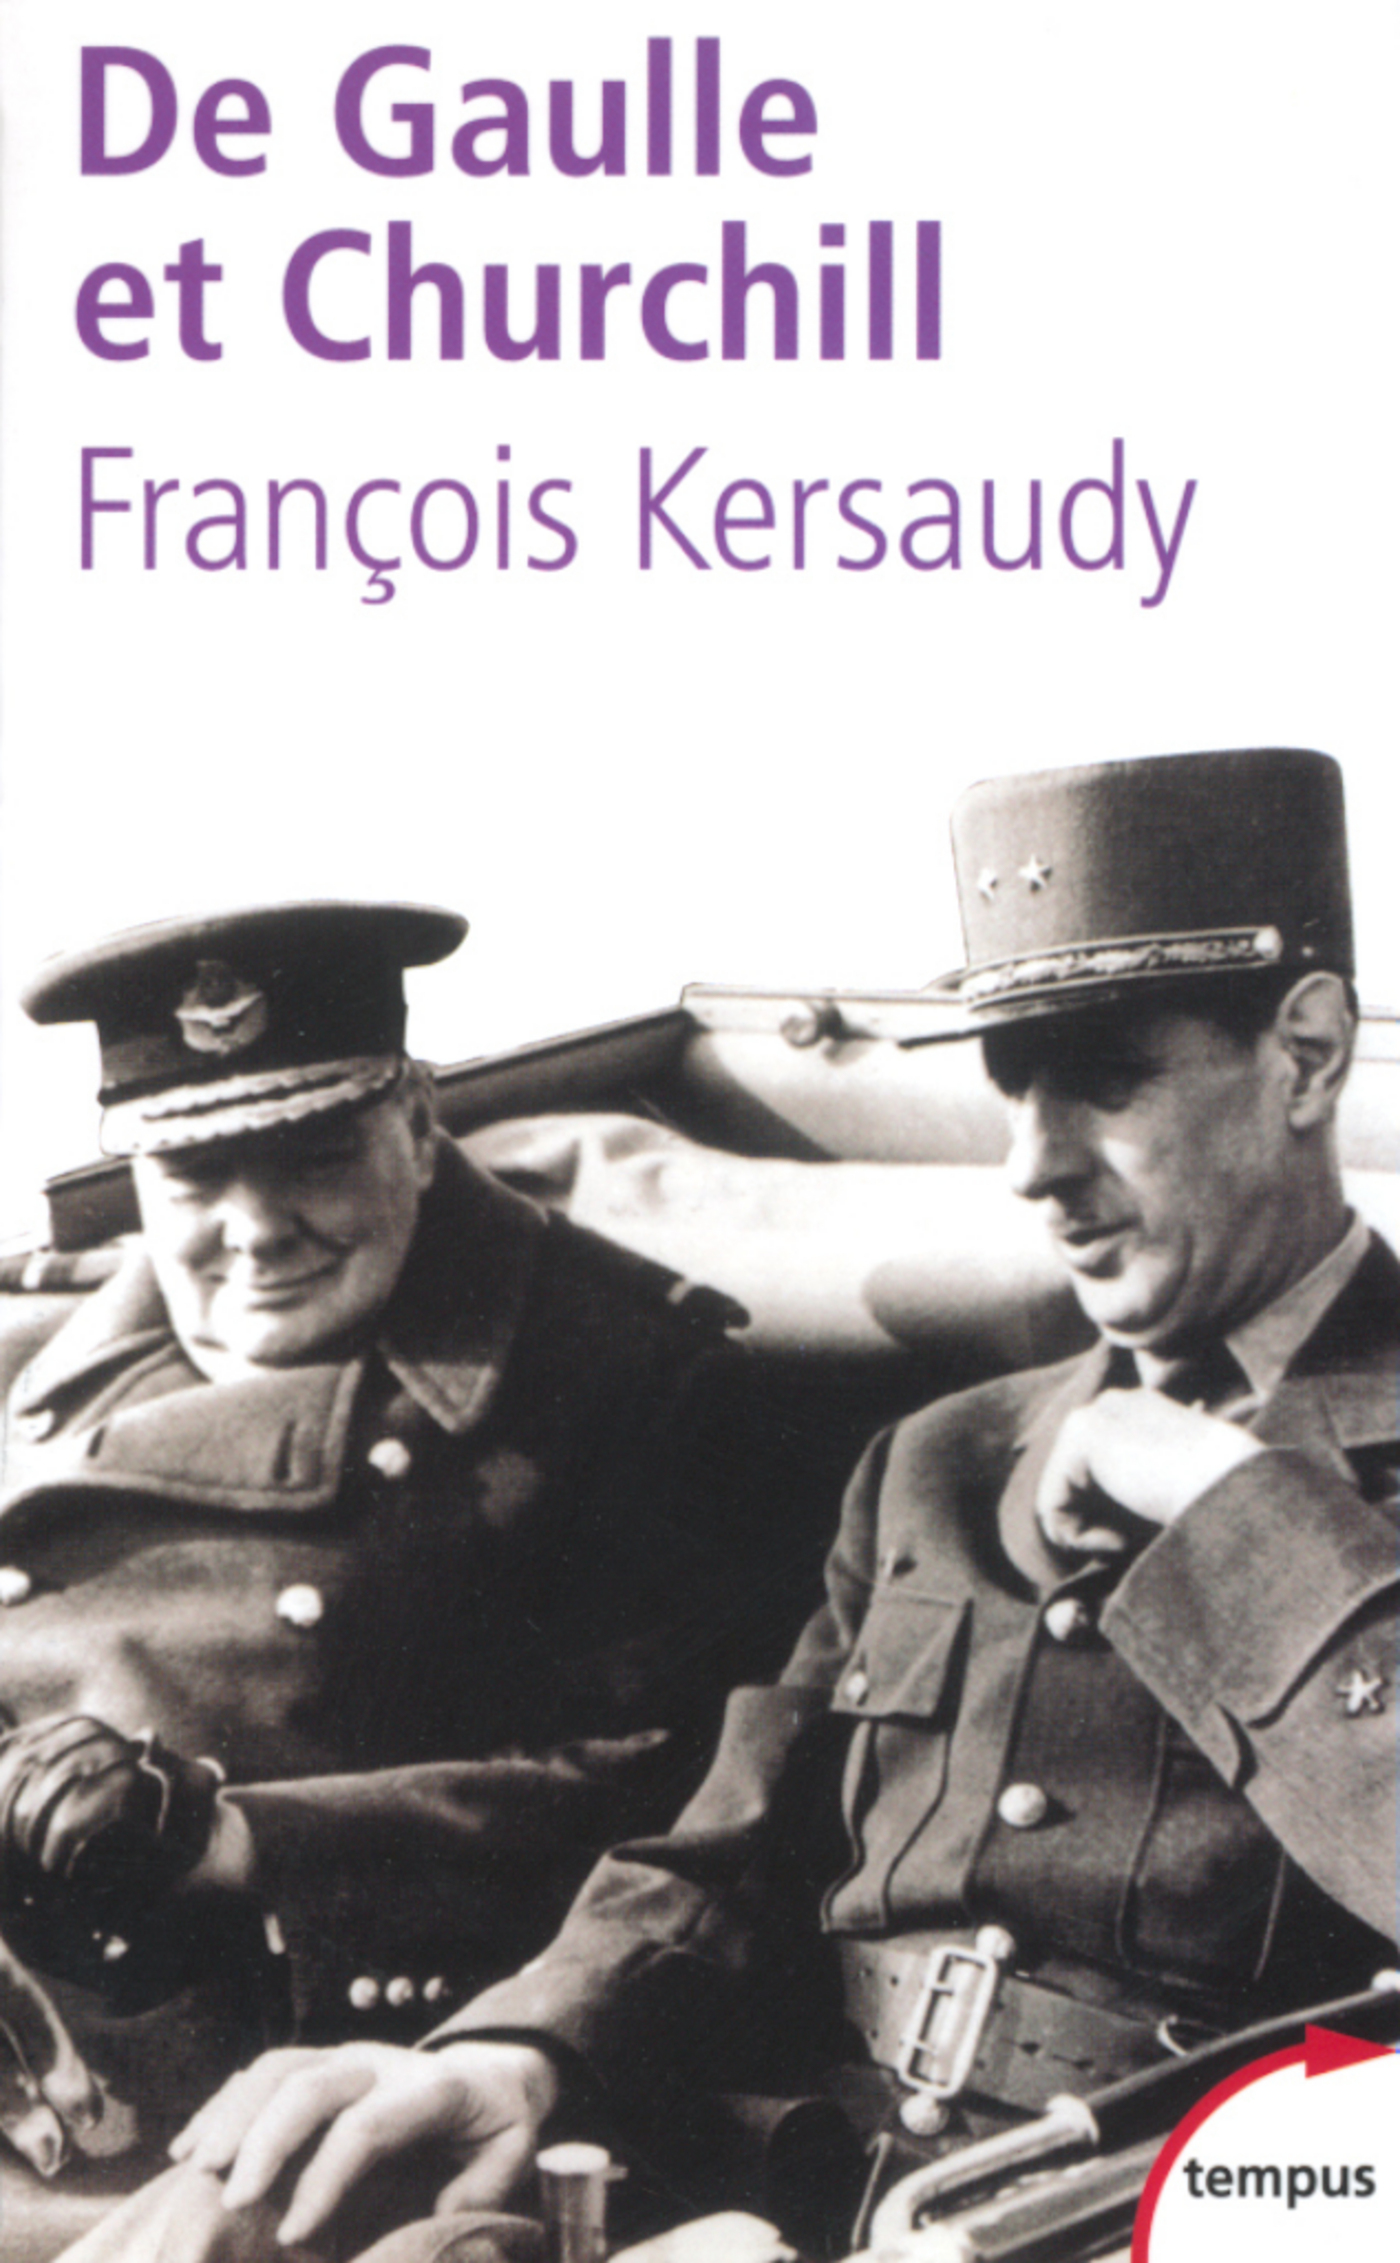 De Gaulle et Churchill (ebook)